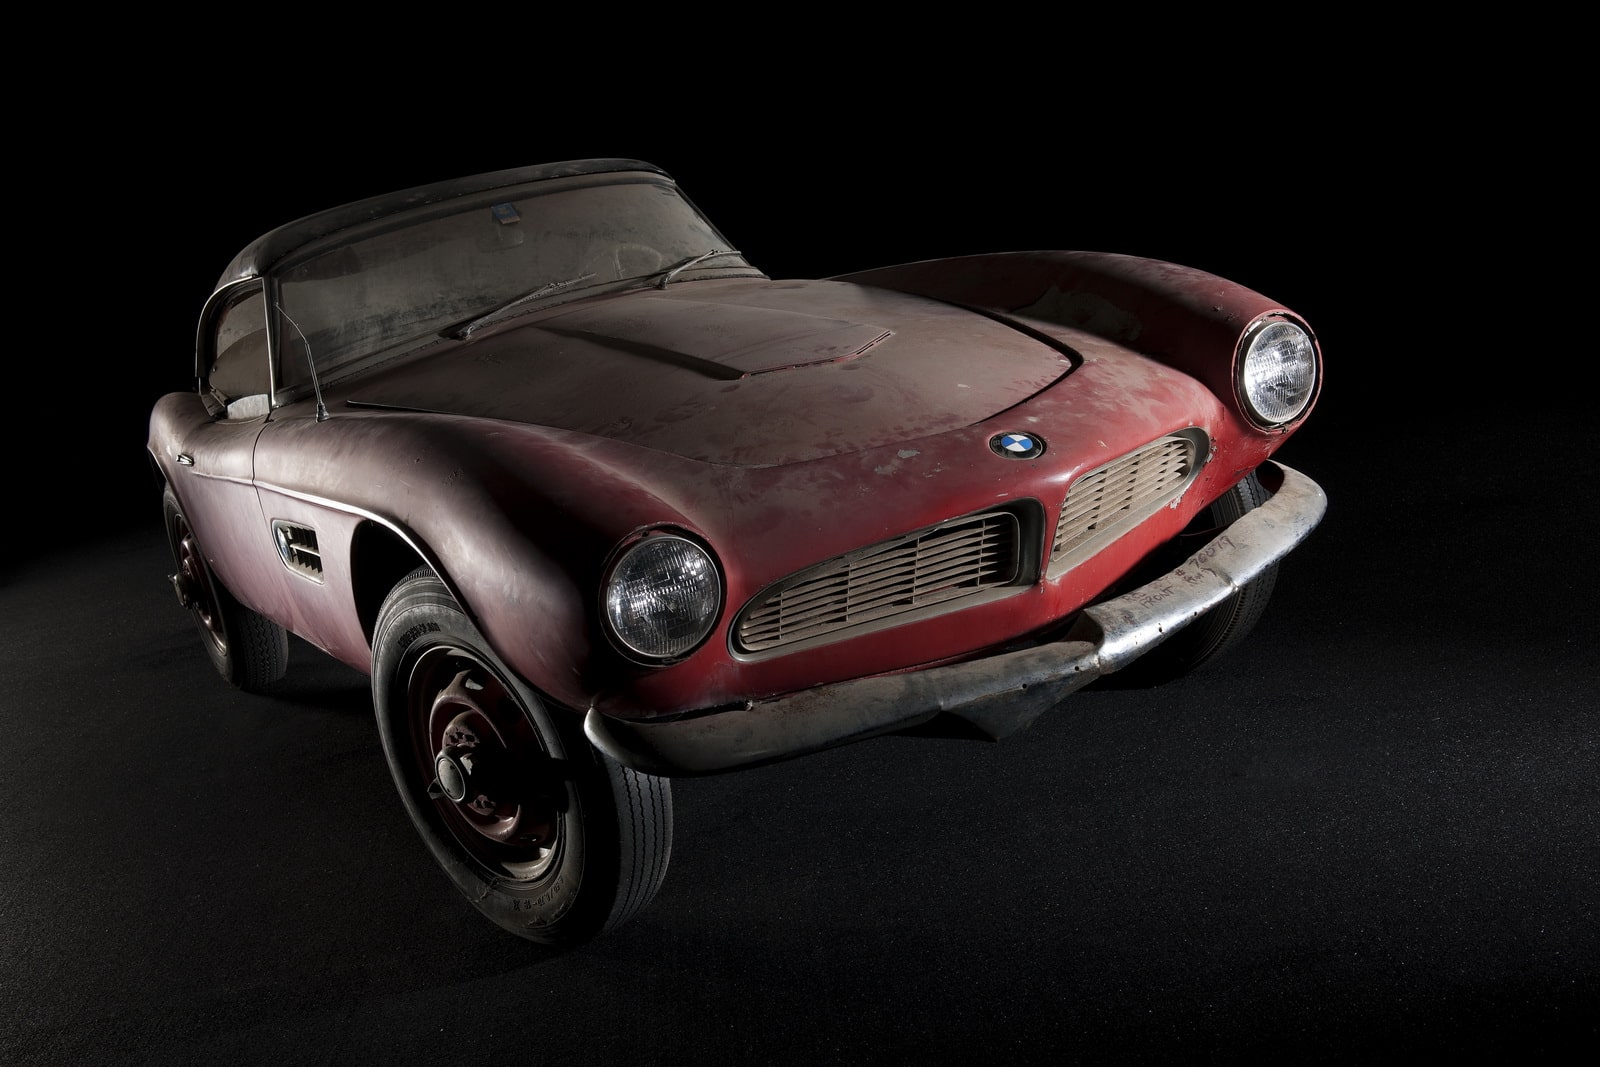 El BMW 507 Roadster de Elvis Presley ha sido restaurado ¡Y debutará en Pebble Beach!